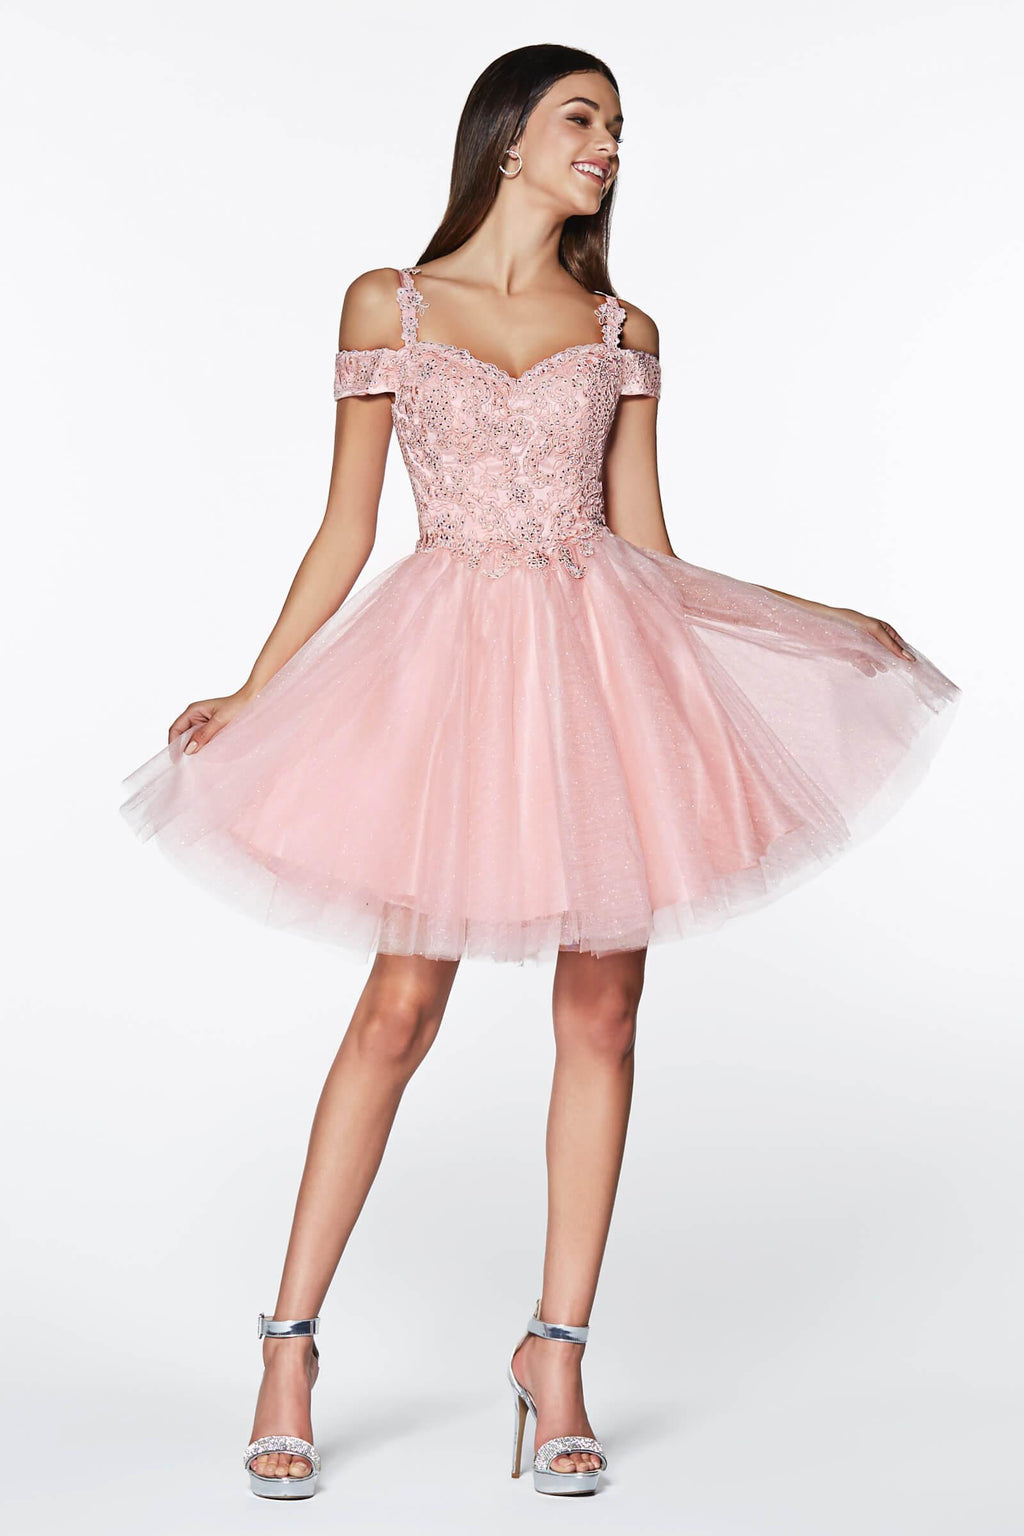 Short Prom Formal Homecoming Dress - The Dress Outlet Blush Cinderella Divine